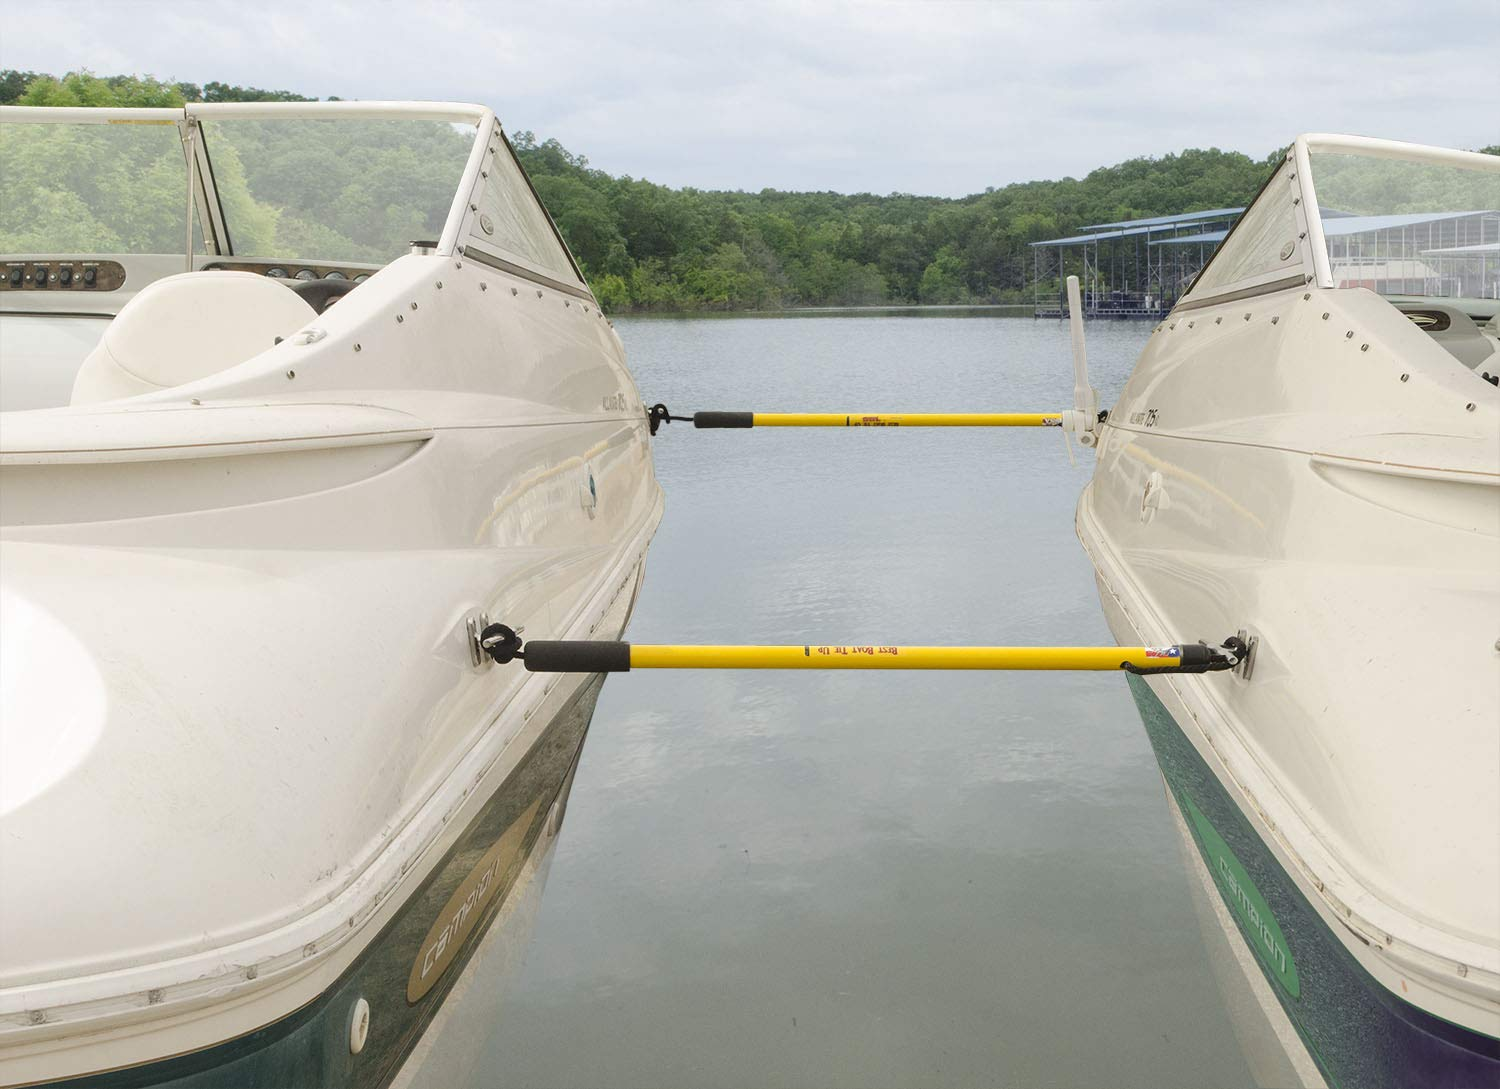 RITE-HITE Boat Tie Up - 2 Pack in White or Yellow, Tie Up Without Having to Get Out of The Boat (Yellow, 30) by RITE-HITE